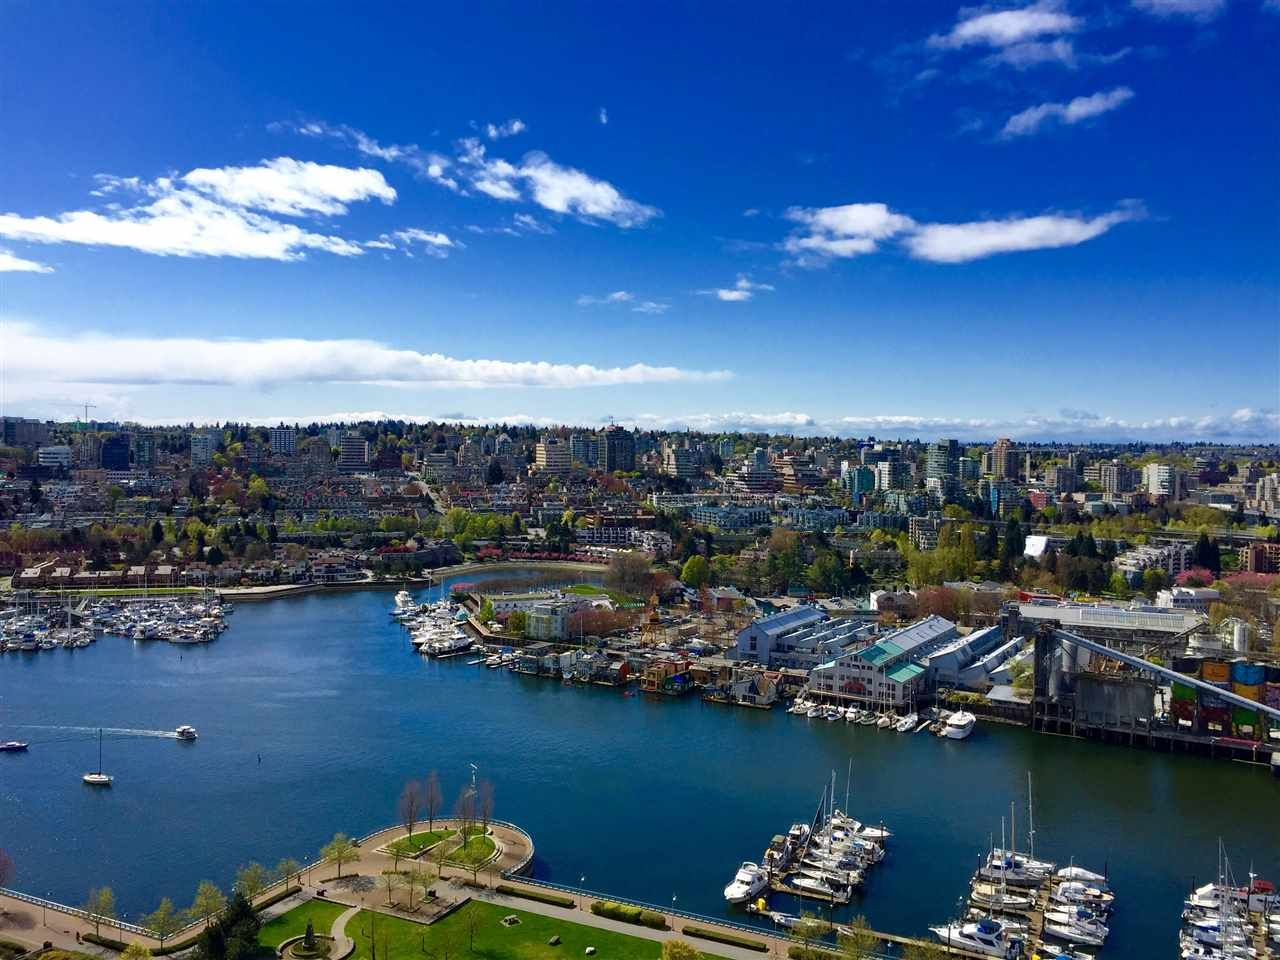 Main Photo: 3102 583 BEACH CRESCENT in Vancouver: Yaletown Condo for sale (Vancouver West)  : MLS®# R2050813